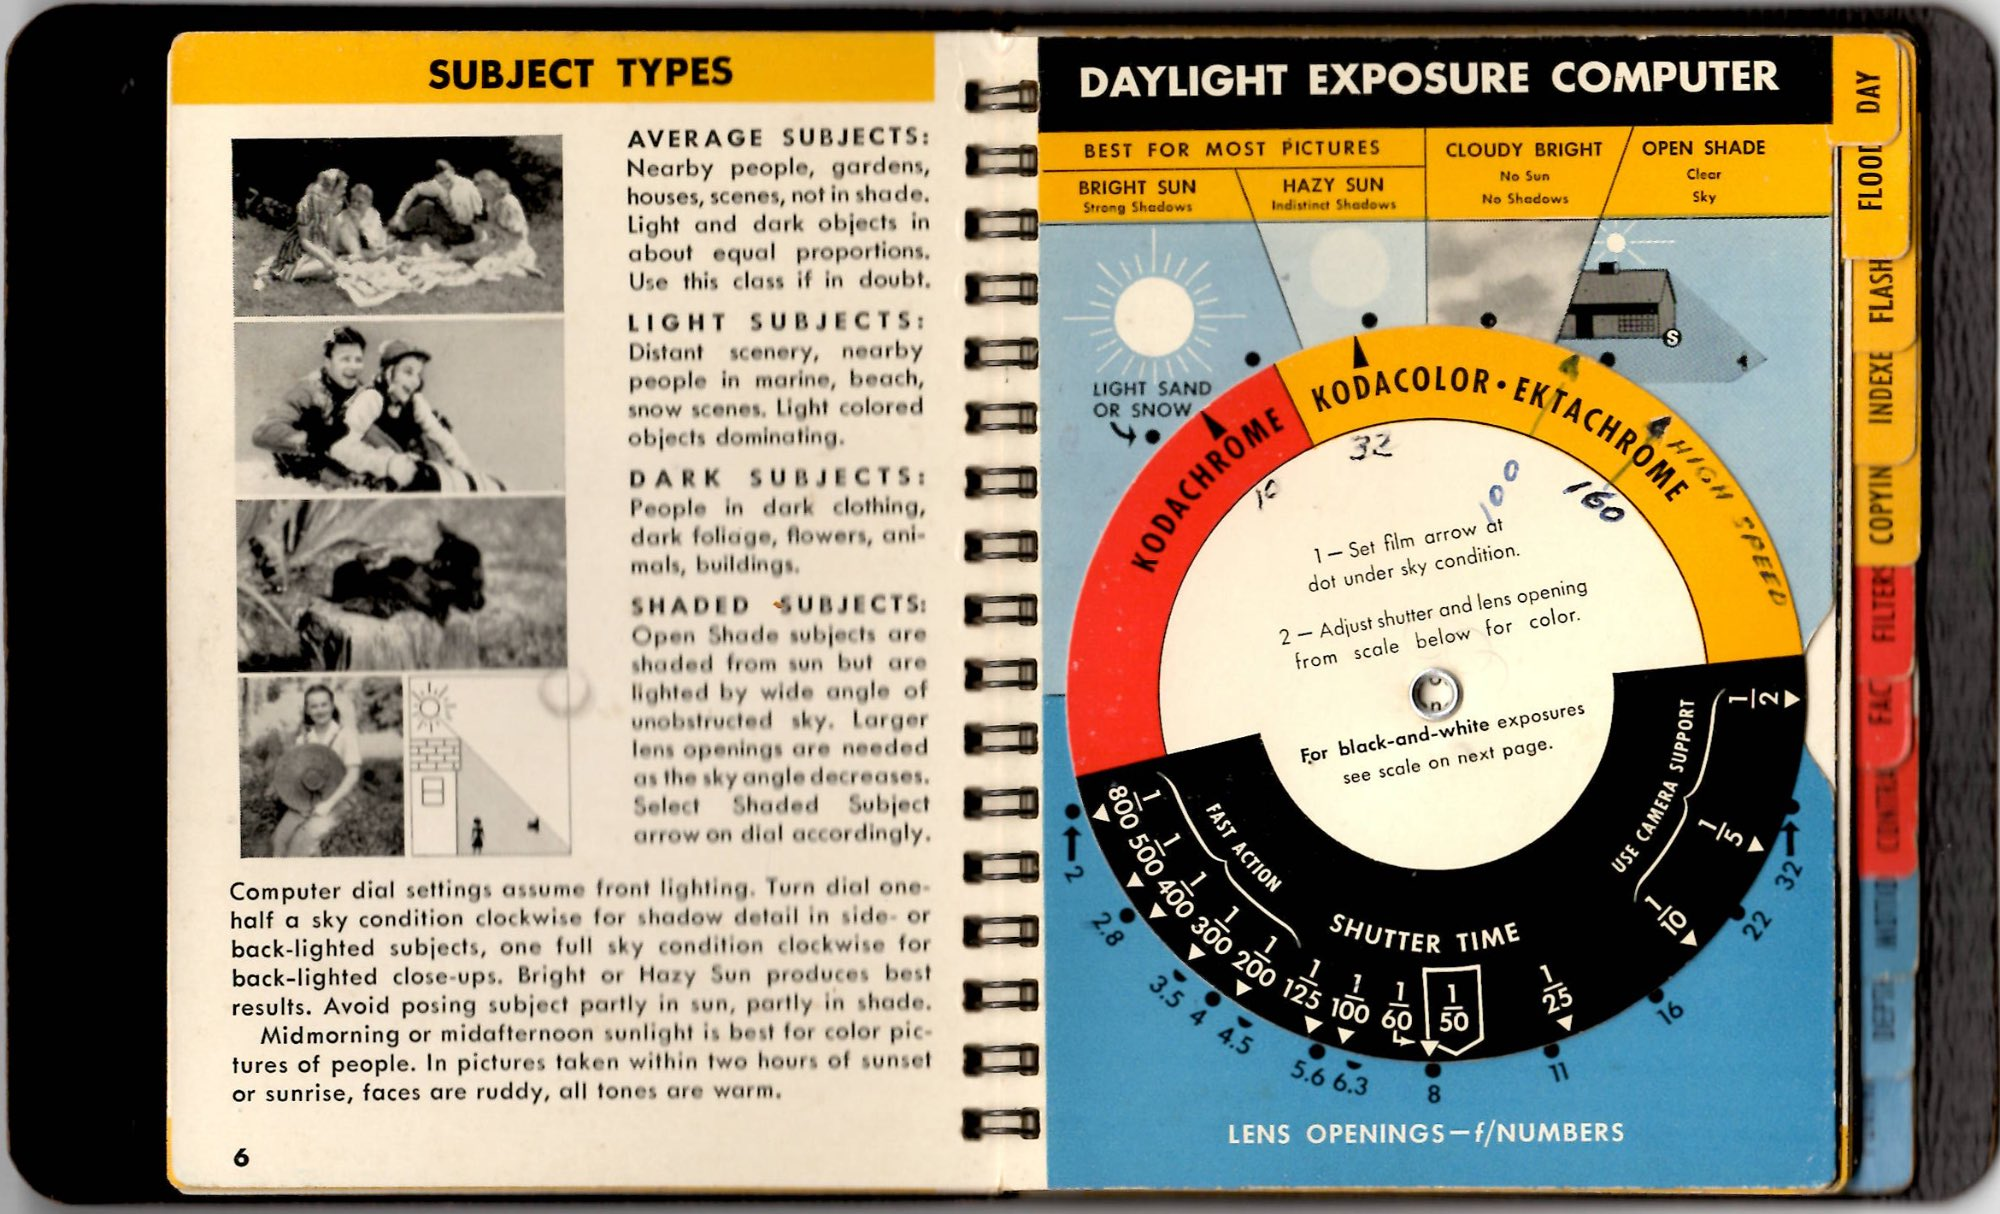 Daylight Exposure Computer from the 1956 version of the Kodak Master Photo Guide